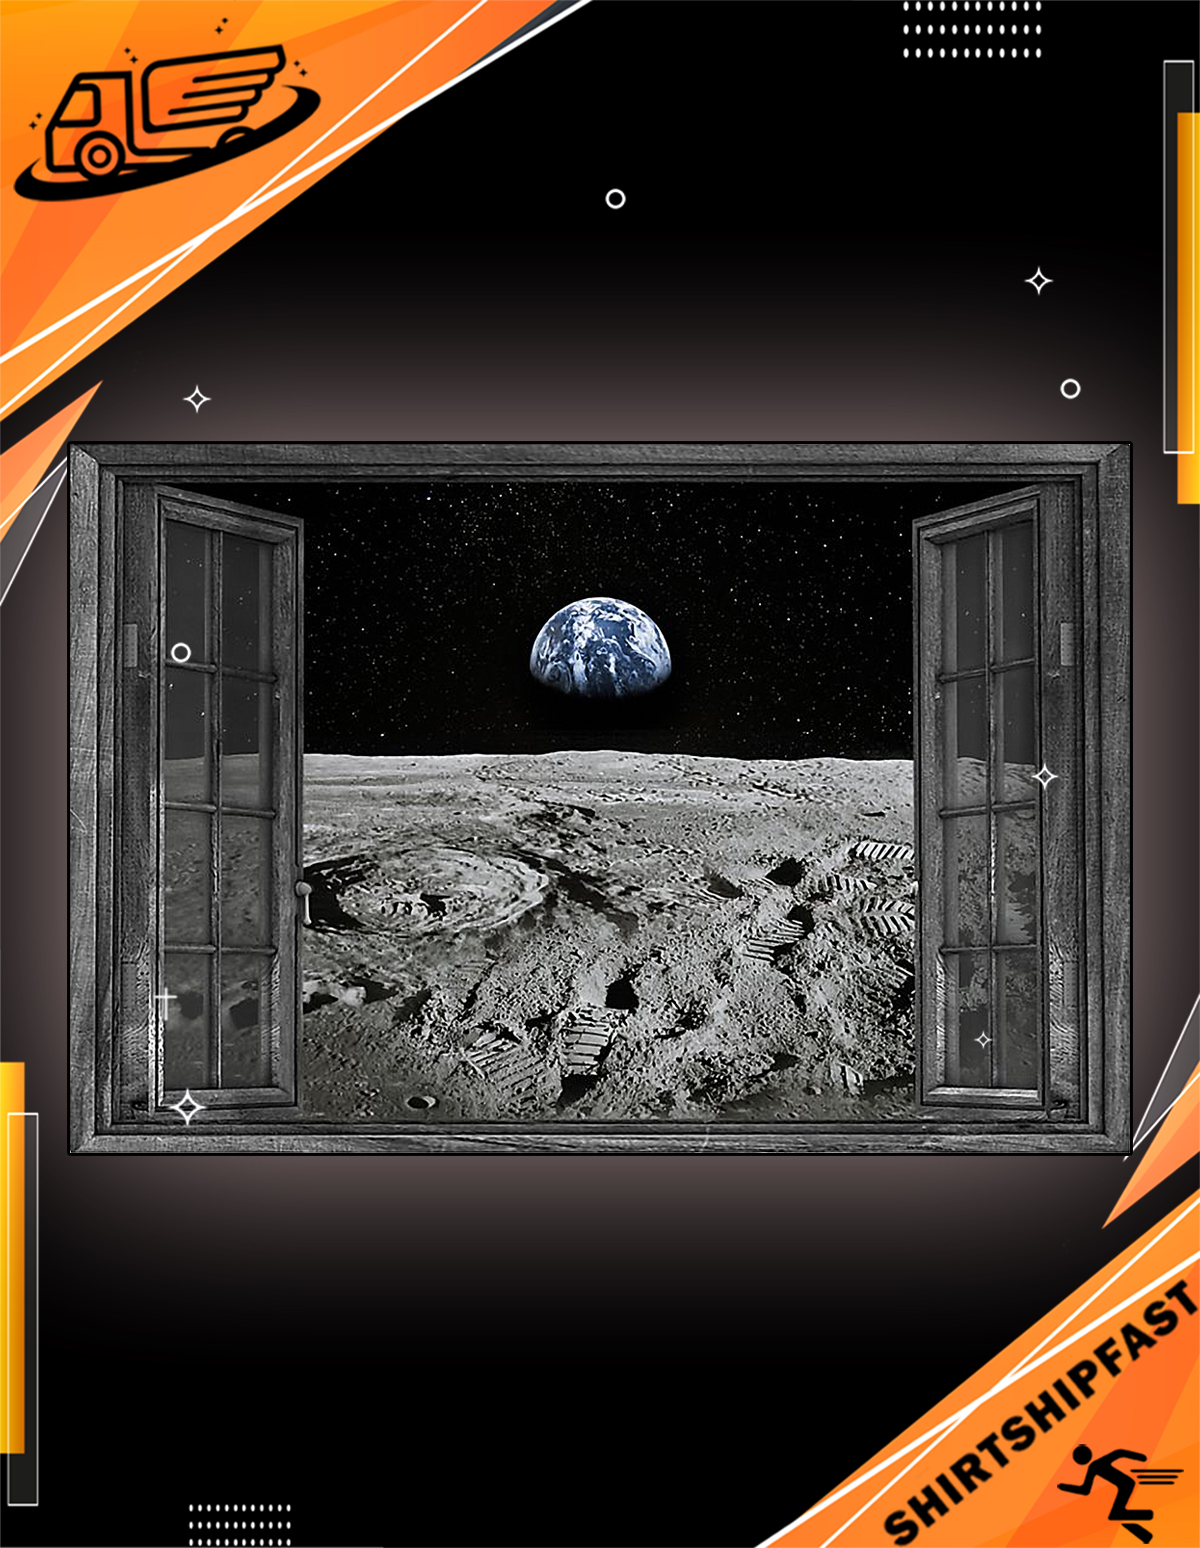 NASA found water on moon poster - Picture 2